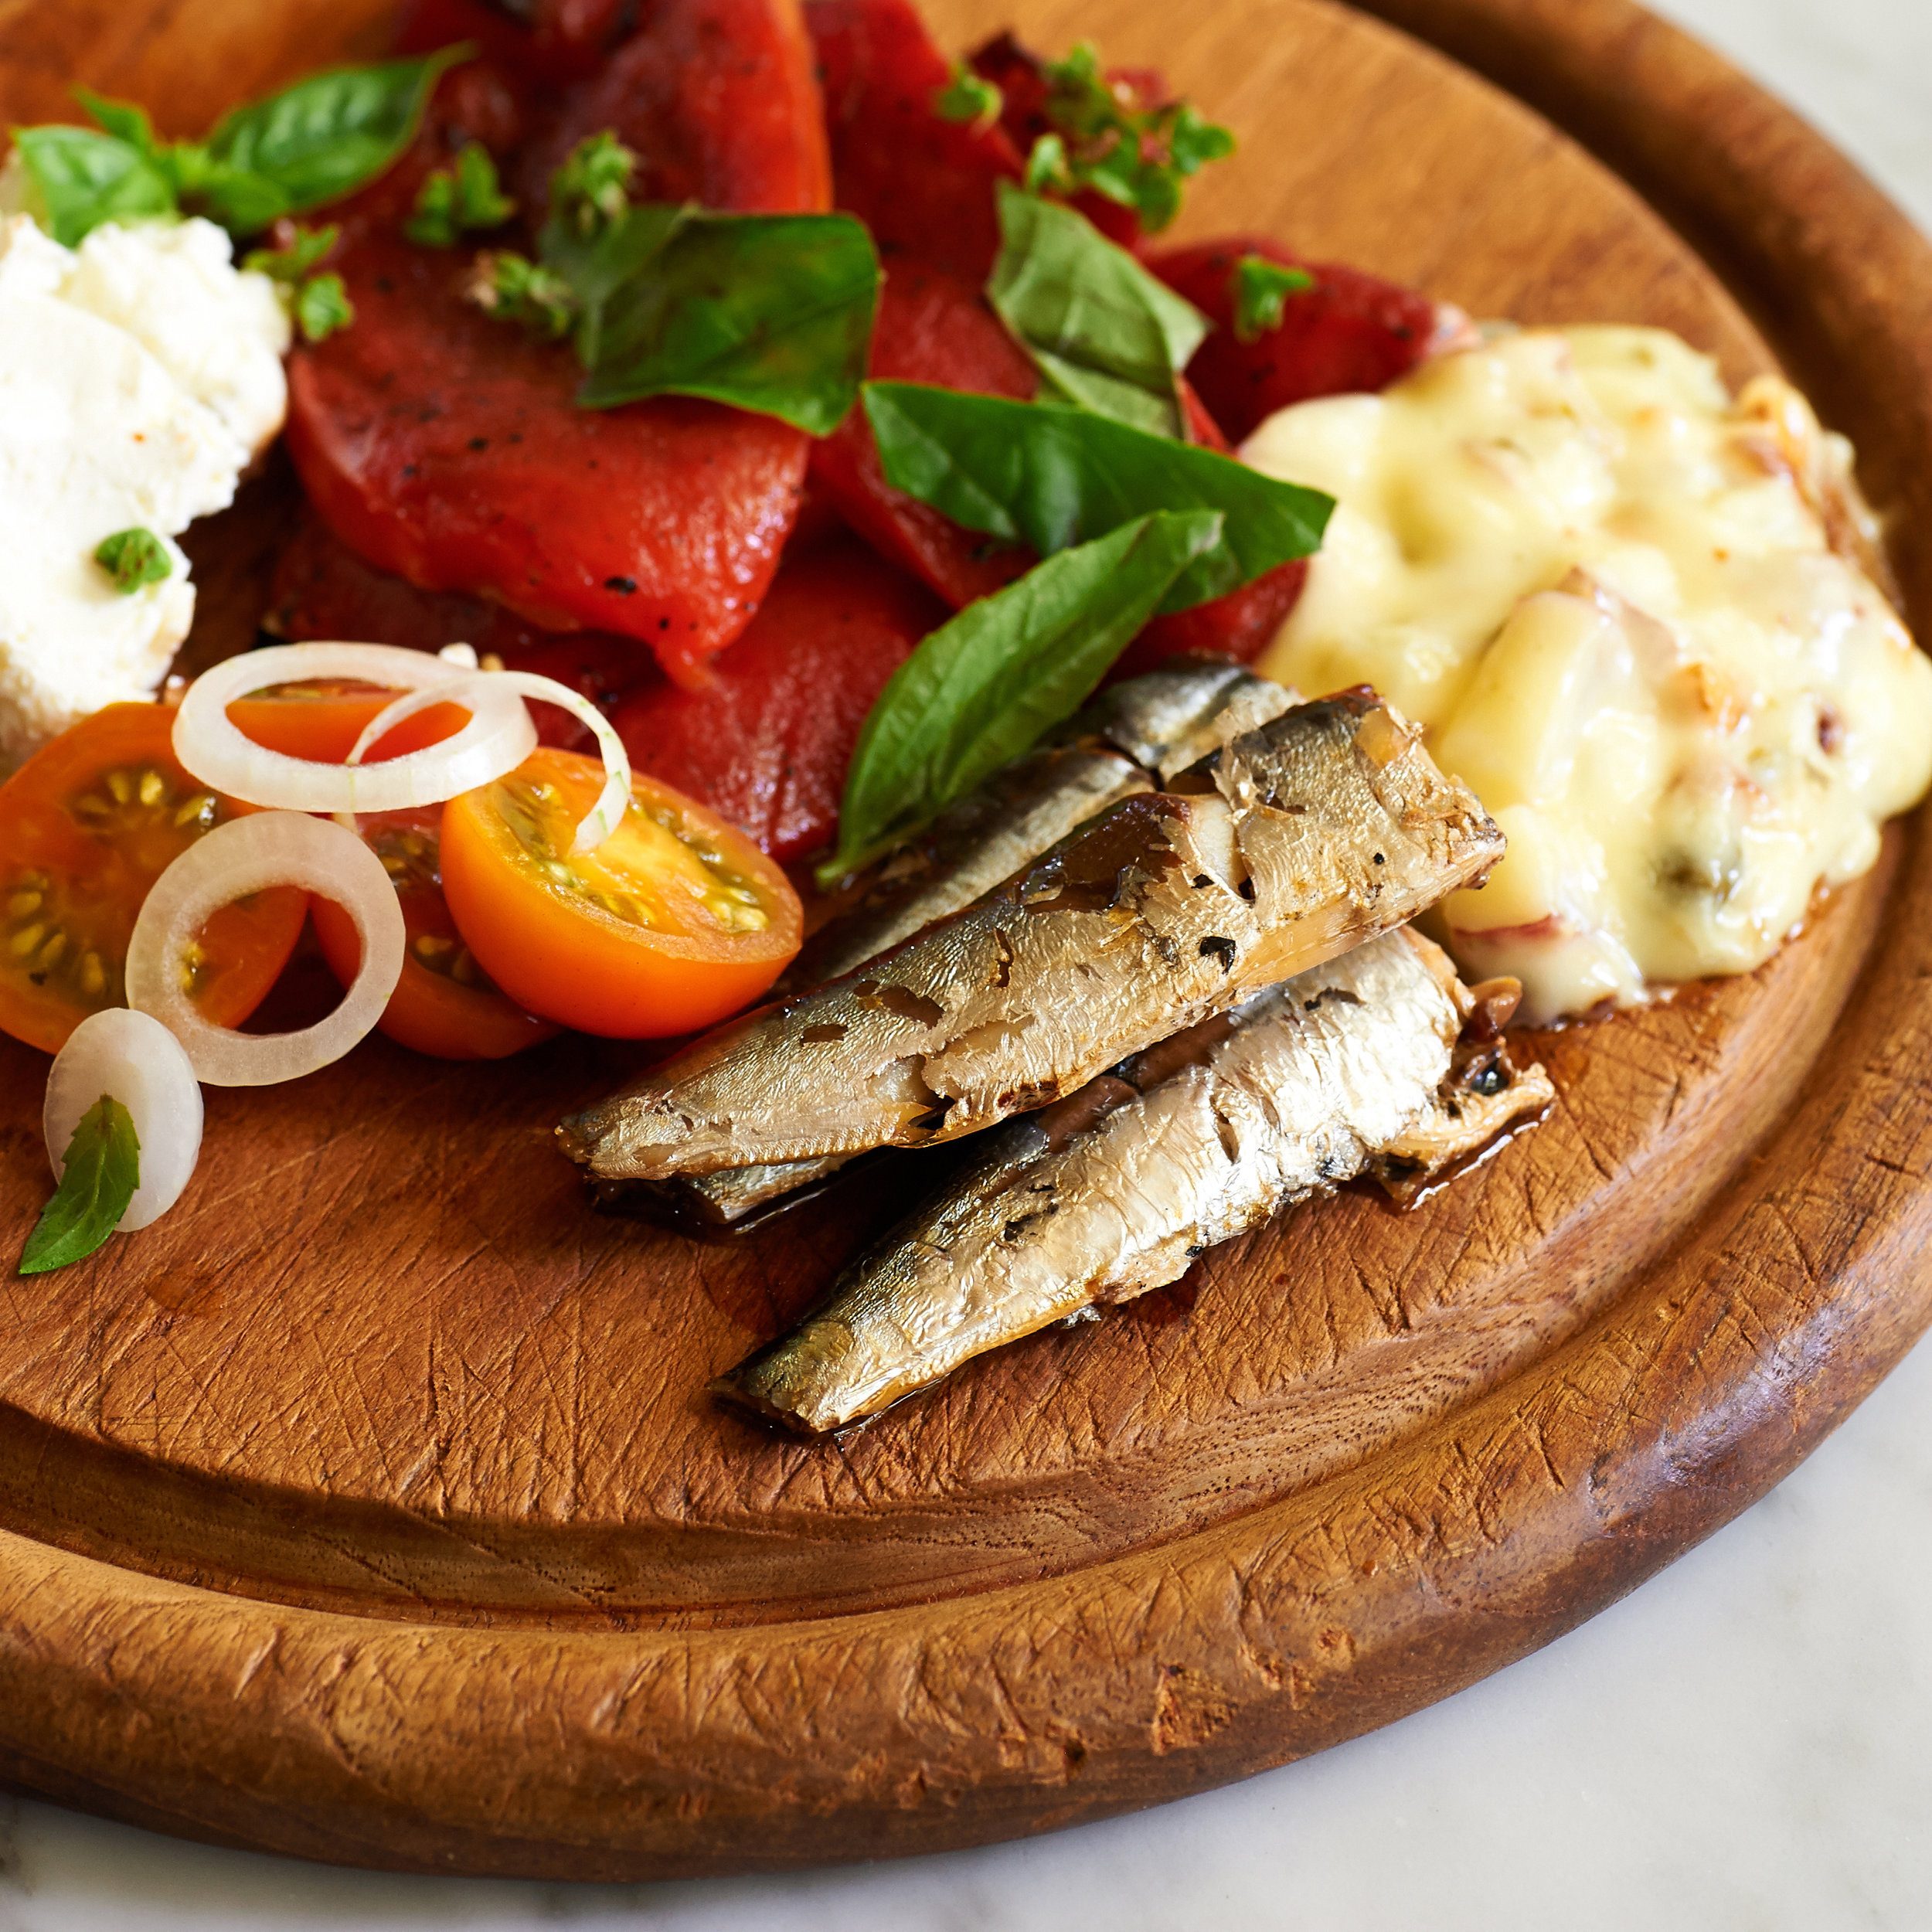 Sardines-with-Skordalia-Roasted-Red-Peppers-and-Goat-Cheese.jpg